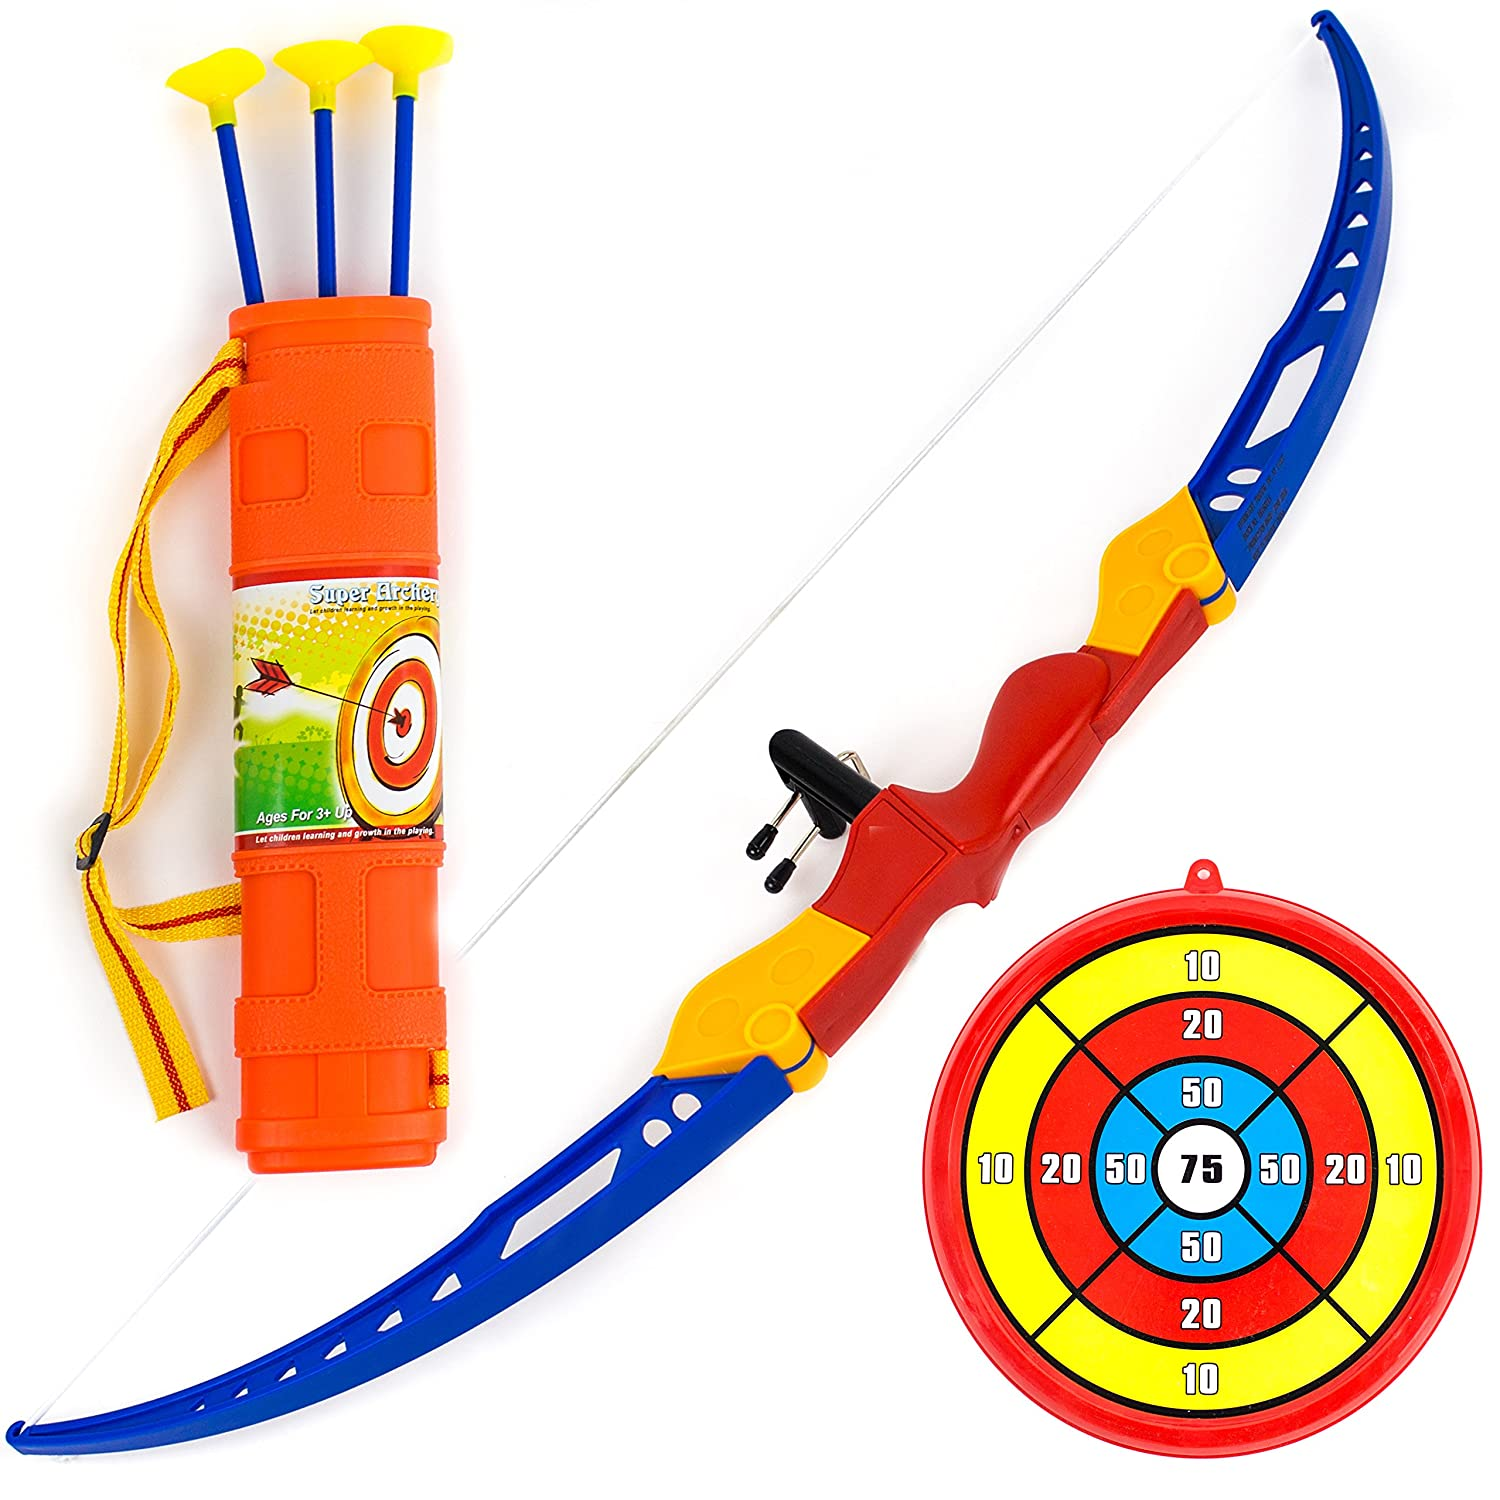 Amazon.com: Toysery Kids Archery Bow and Arrow Toy Set with Target ...